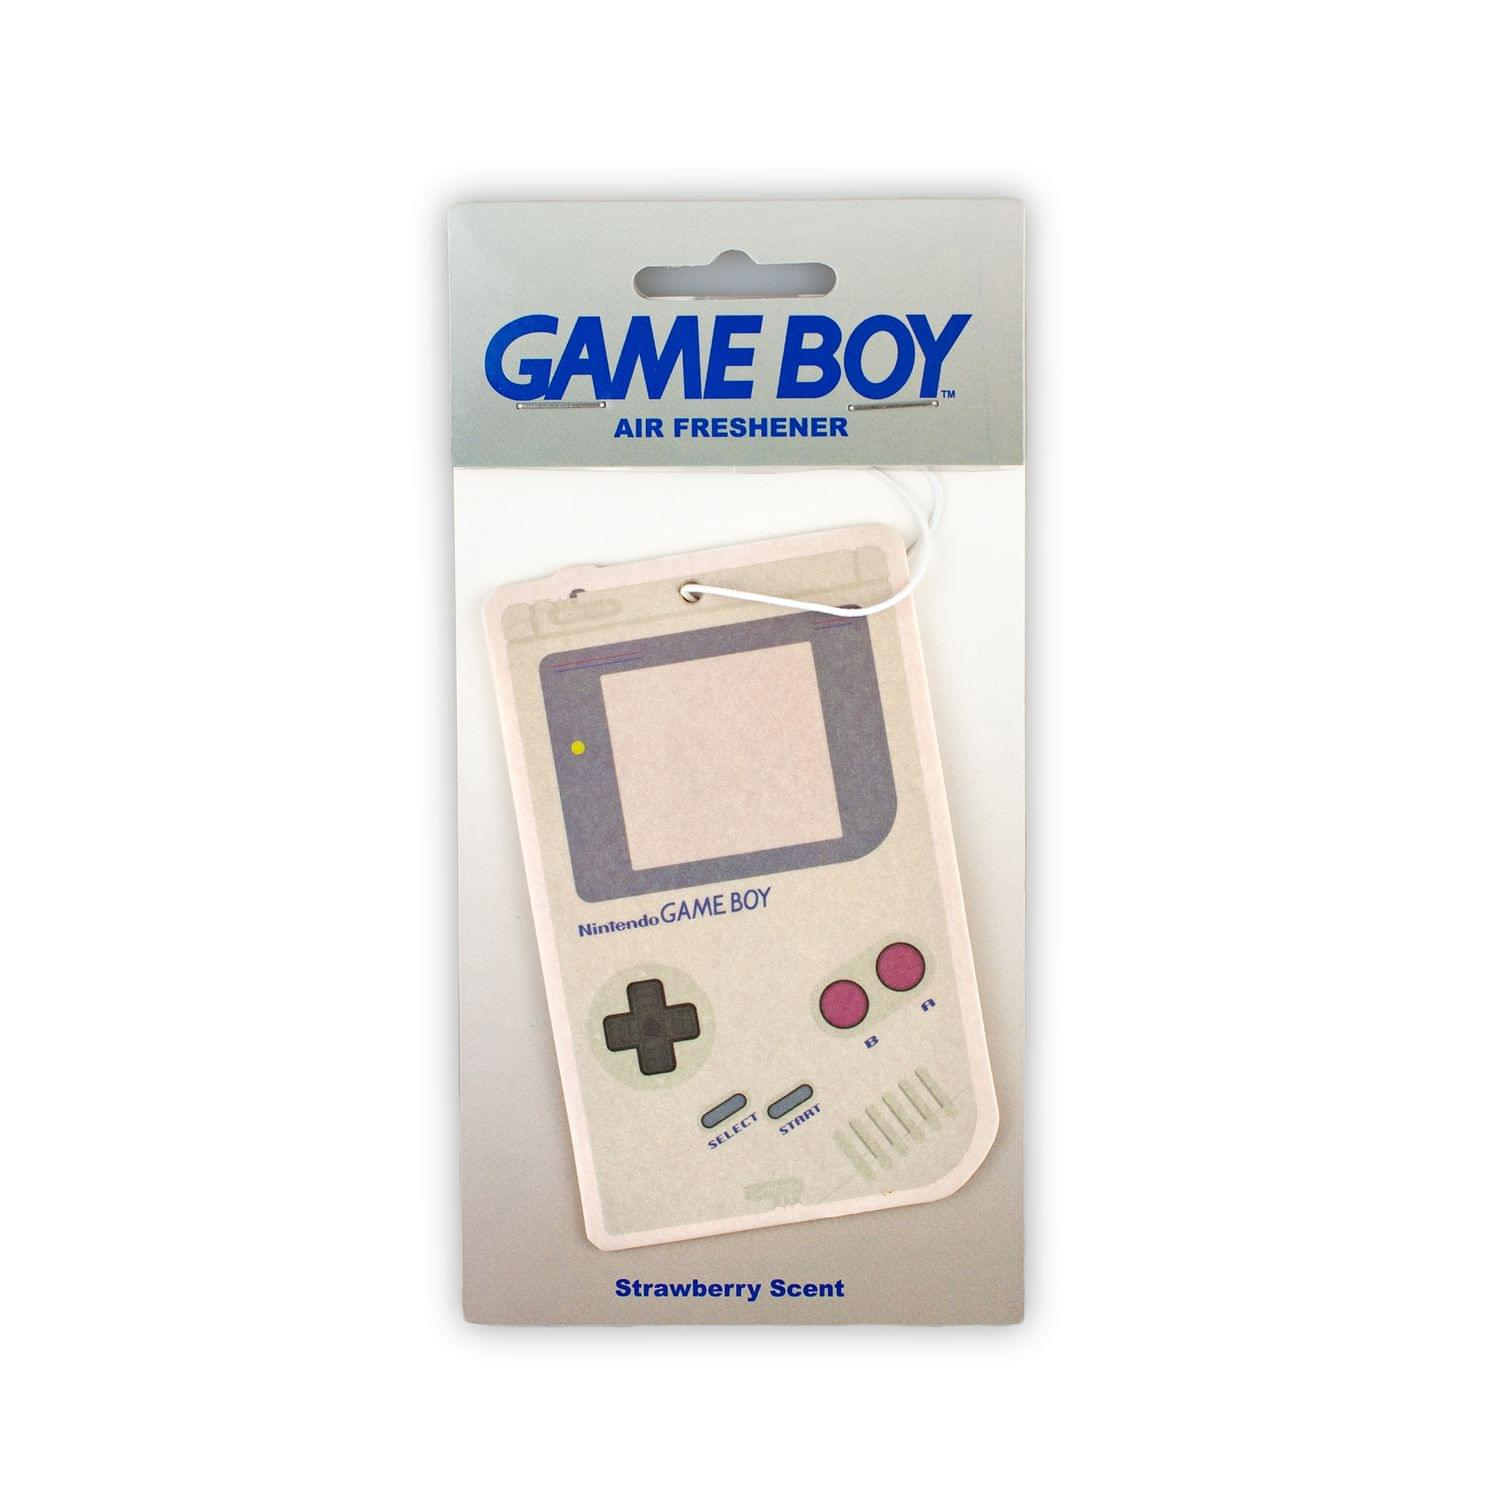 Nintendo Game Boy Strawberry Car Air Freshener | Official Nintendo Collectible